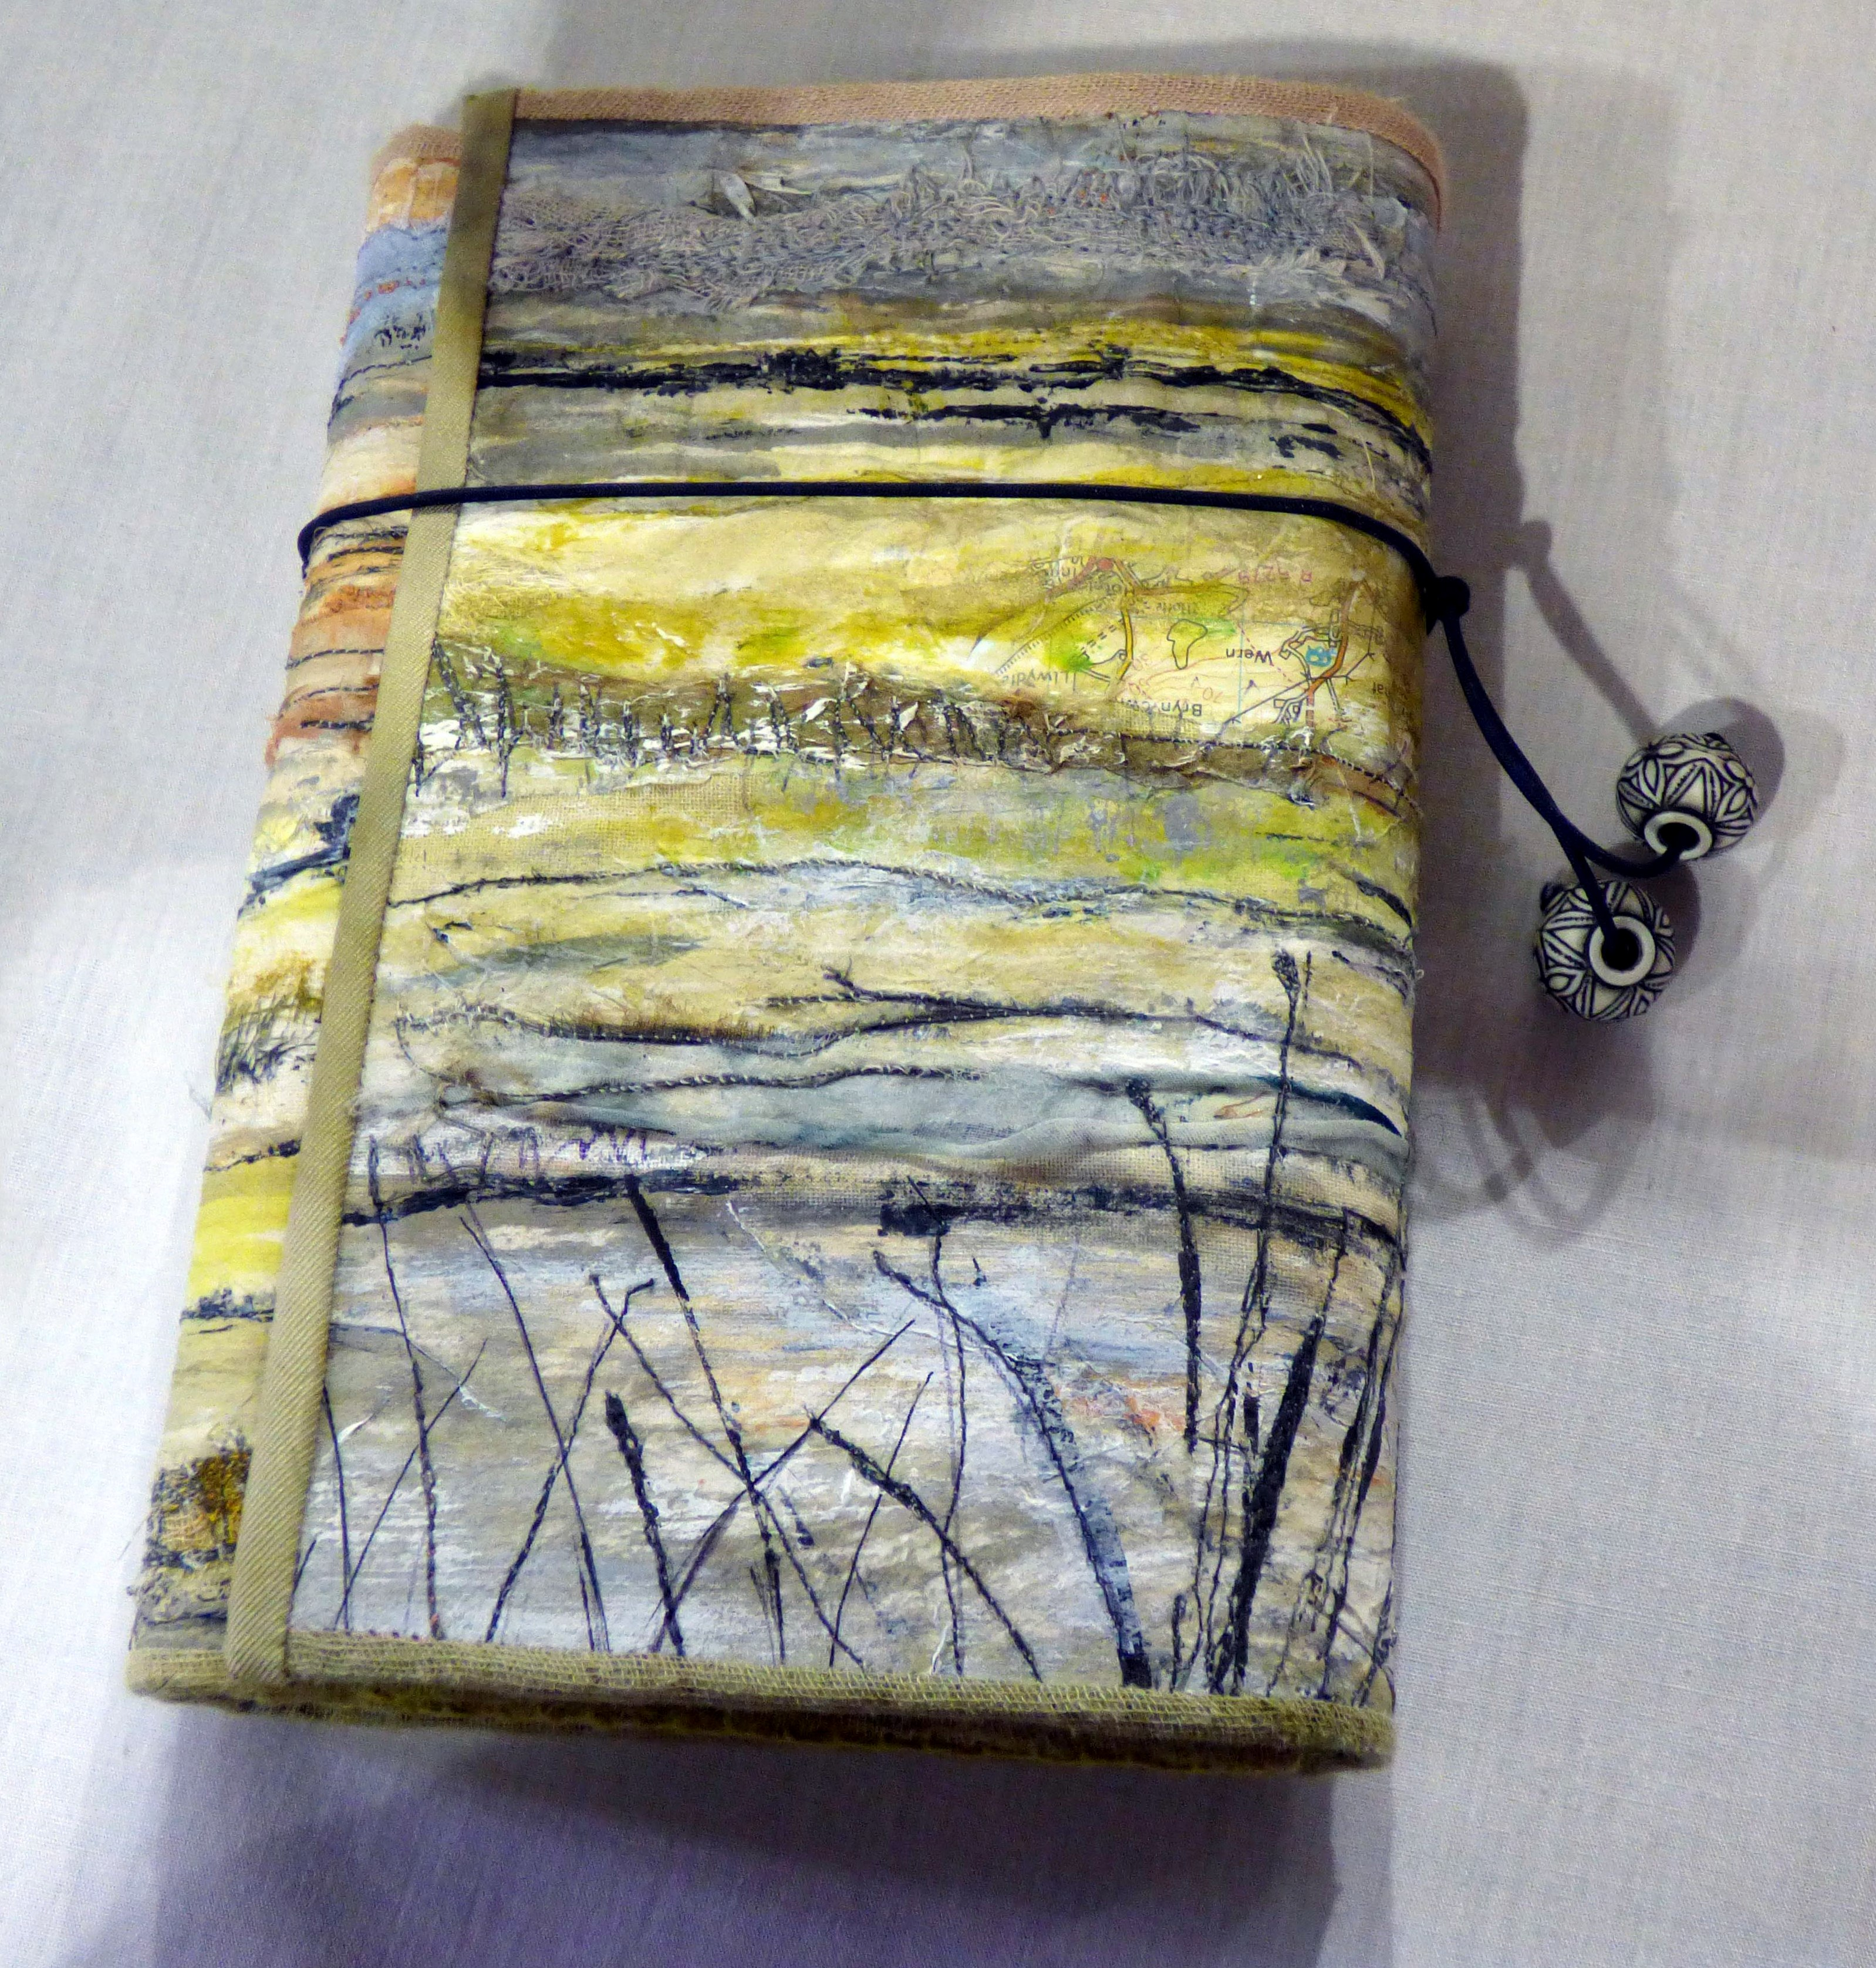 BOOK COVER by Miriam Forder, N.Wales EG, mixed media and stitch